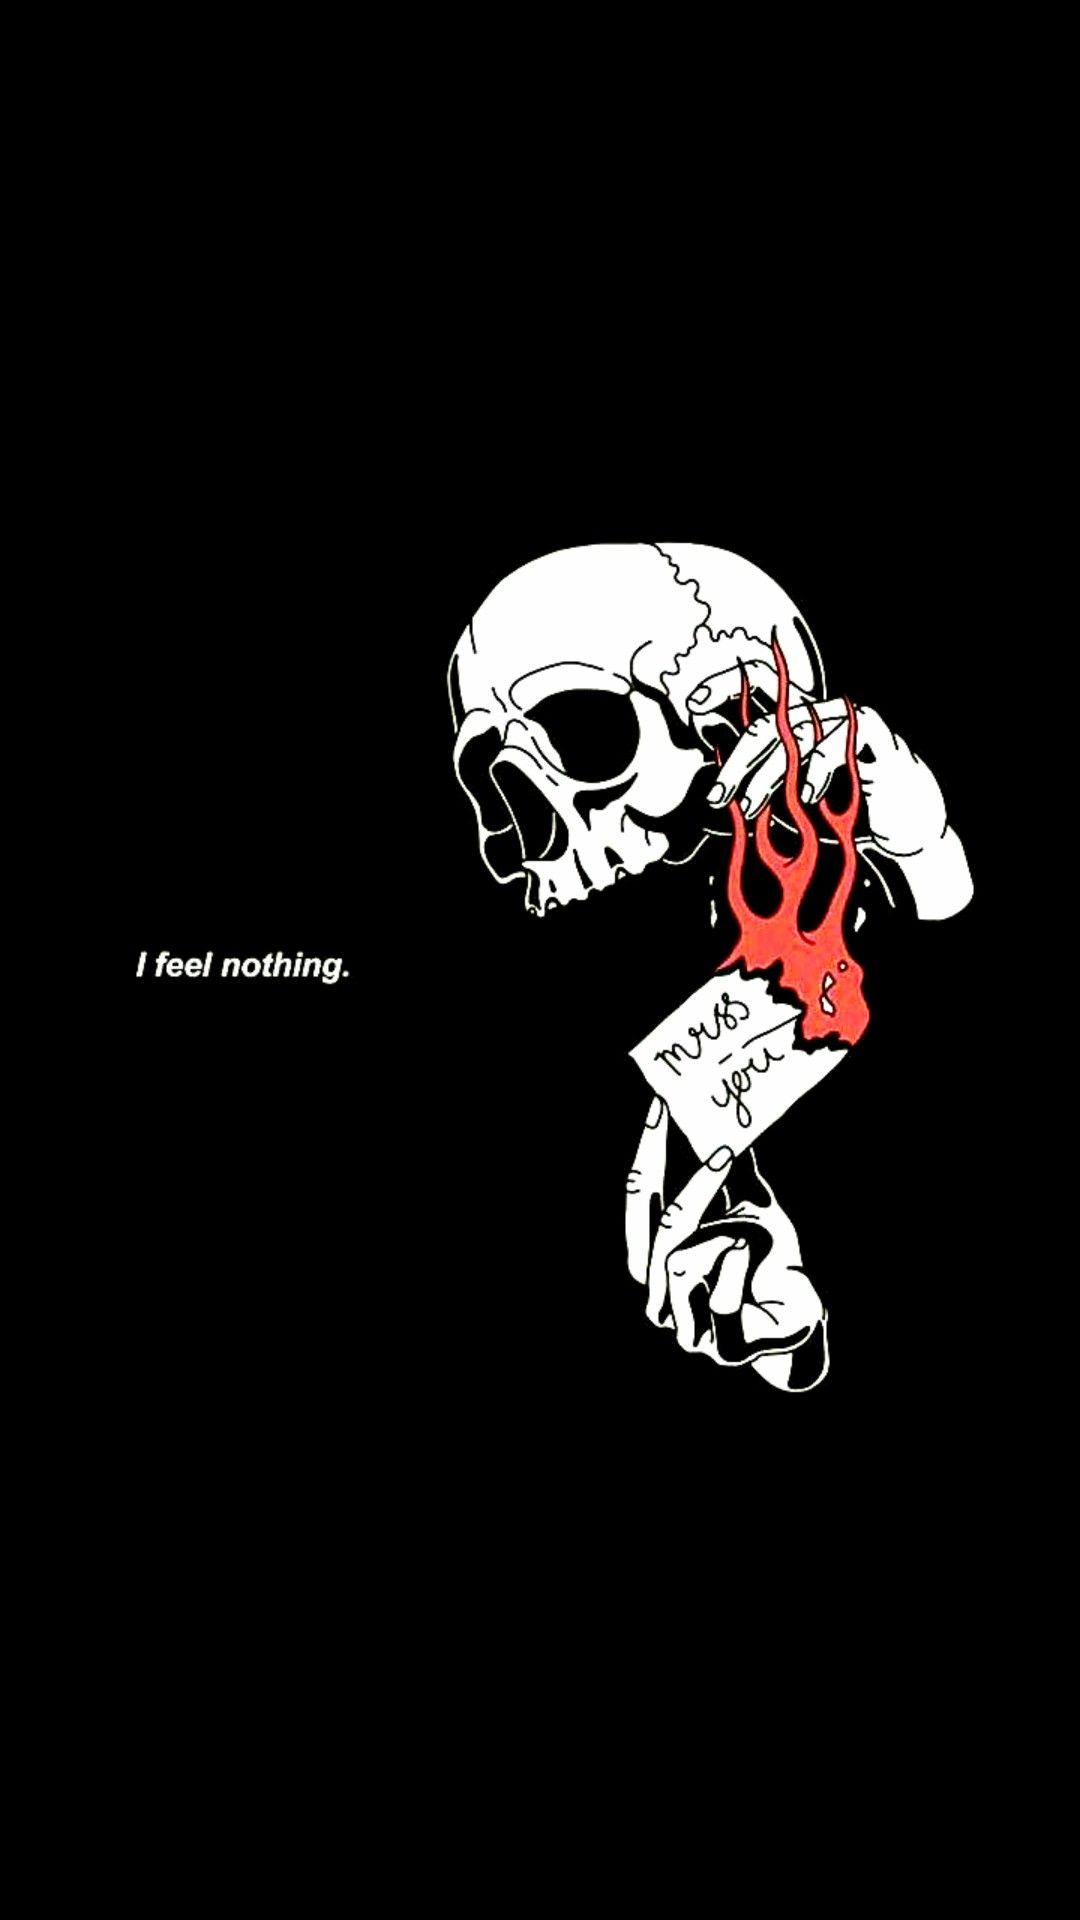 Pin By On ʷᵃˡˡᵖᵃᵖᵉʳˢ Edgy Wallpaper Skull Wallpaper